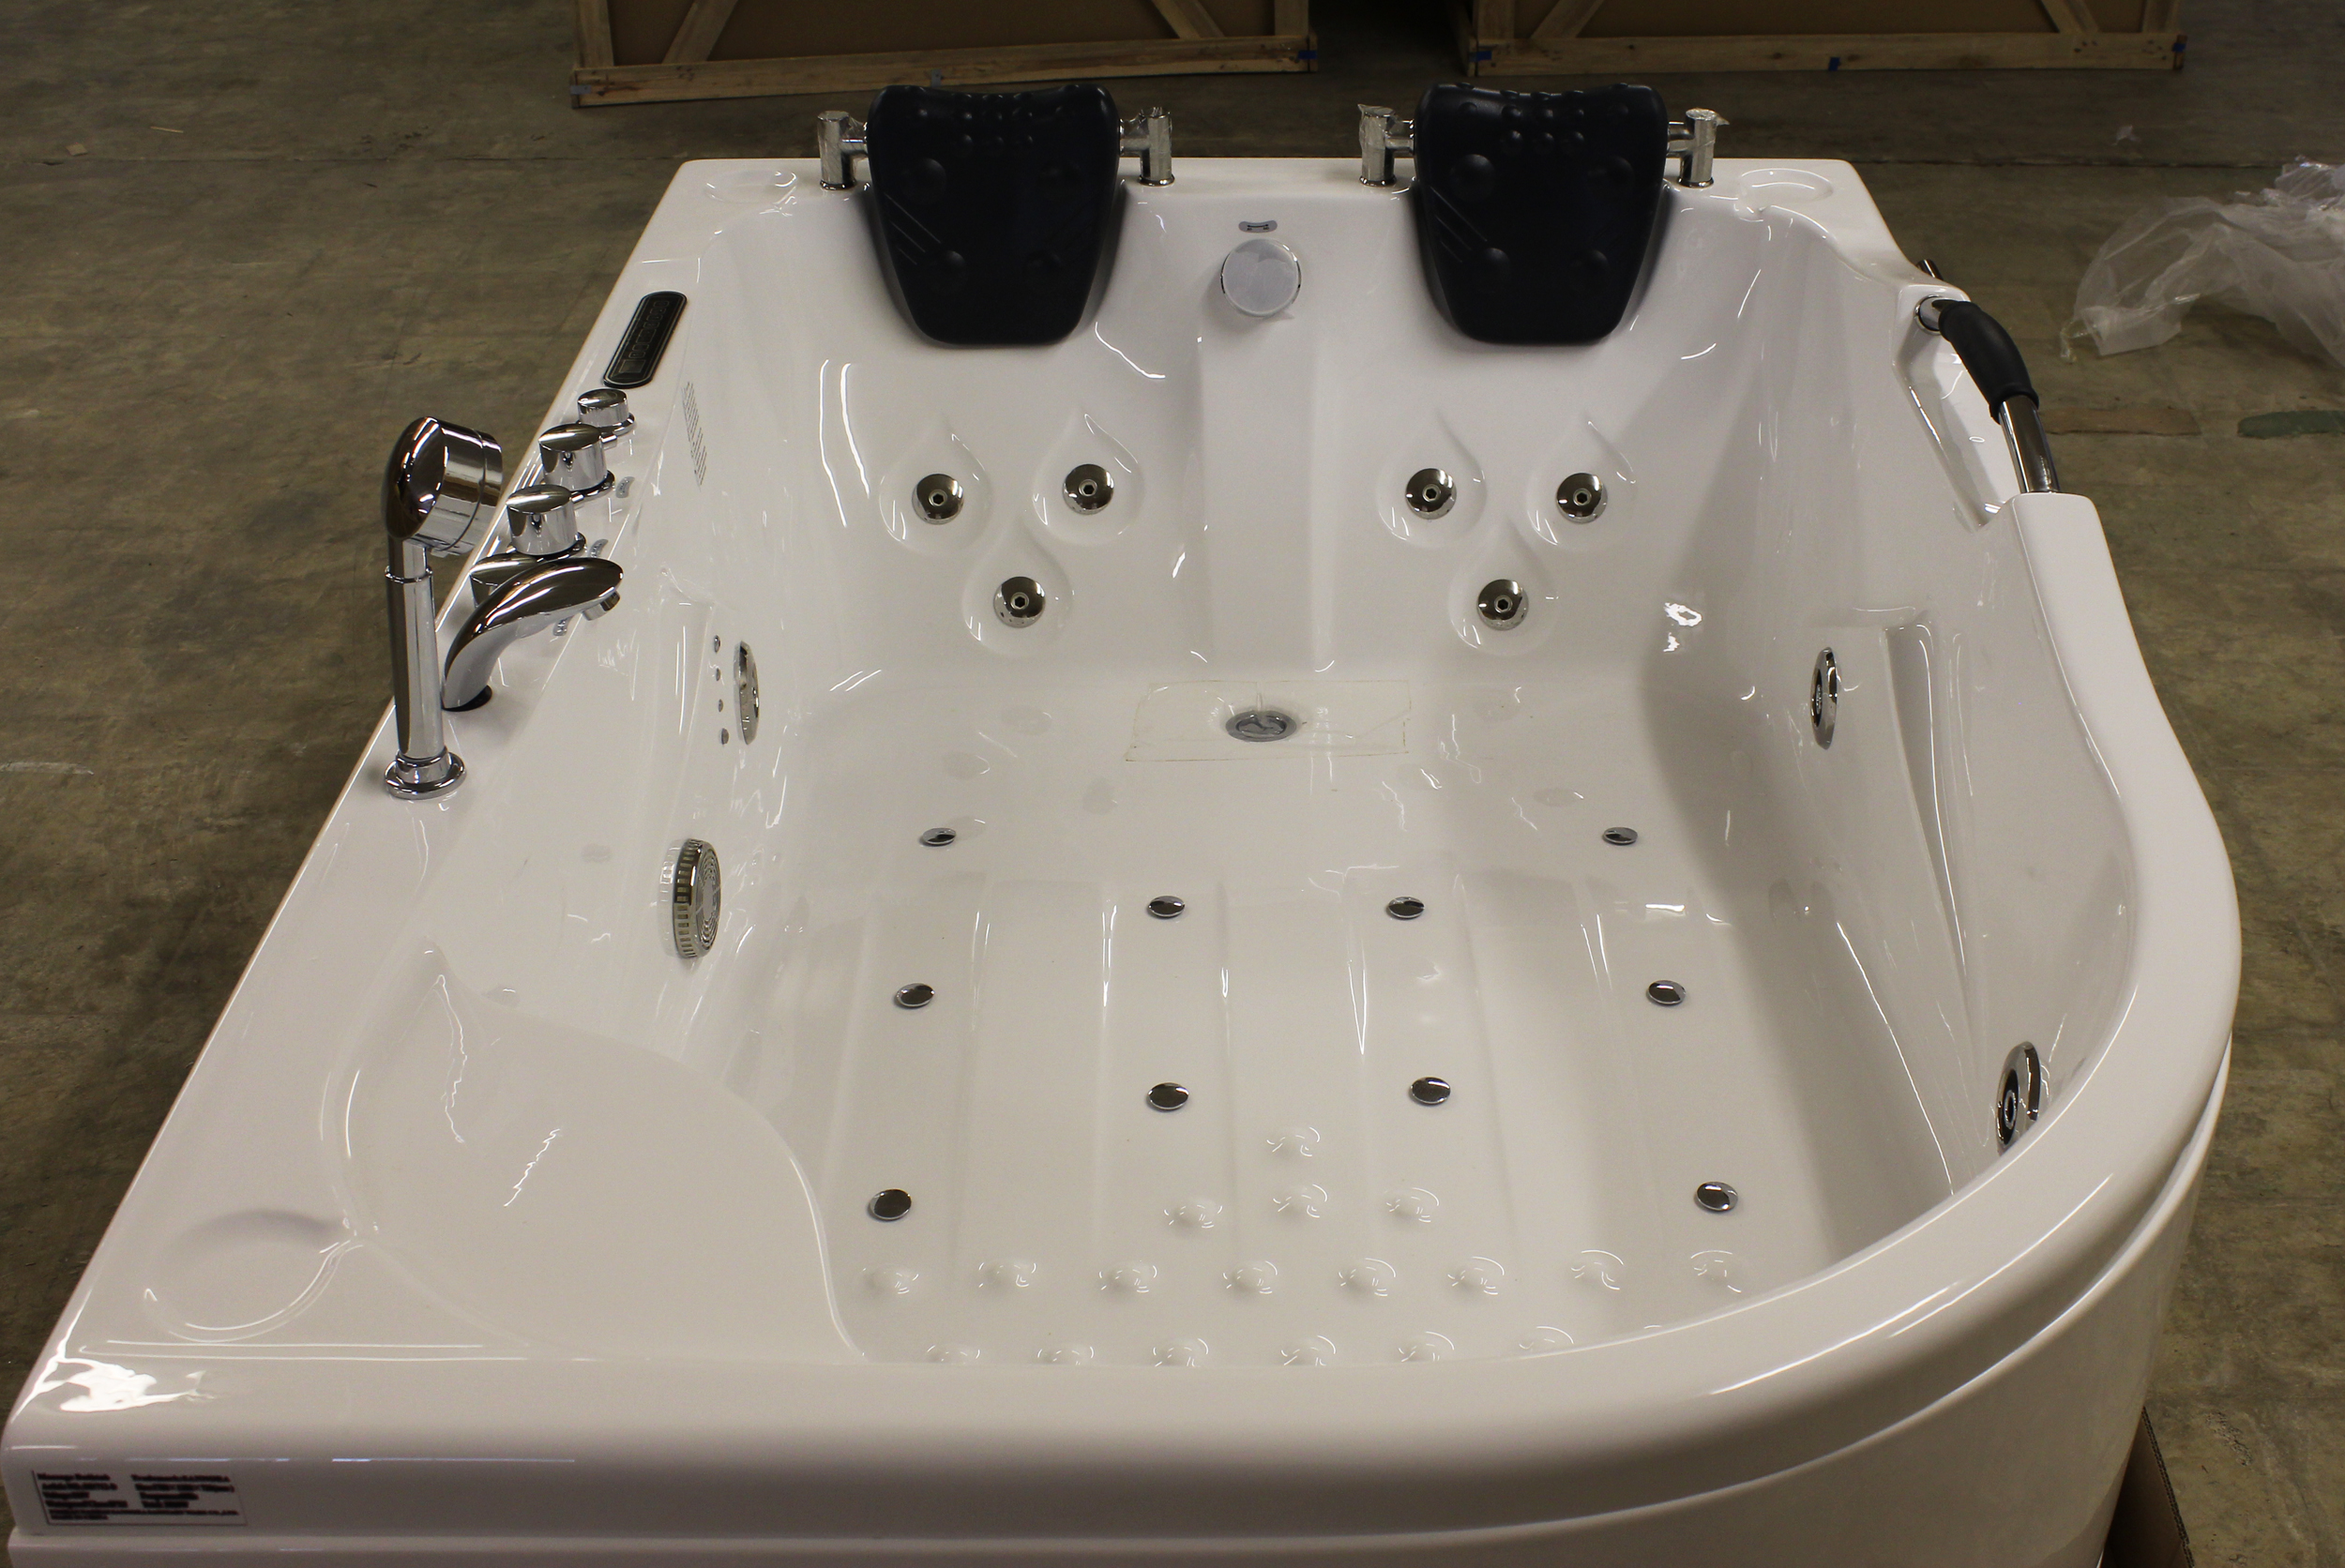 Deluxe Computerized Whirlpool Jacuzzi Hot Tub M1712 Air